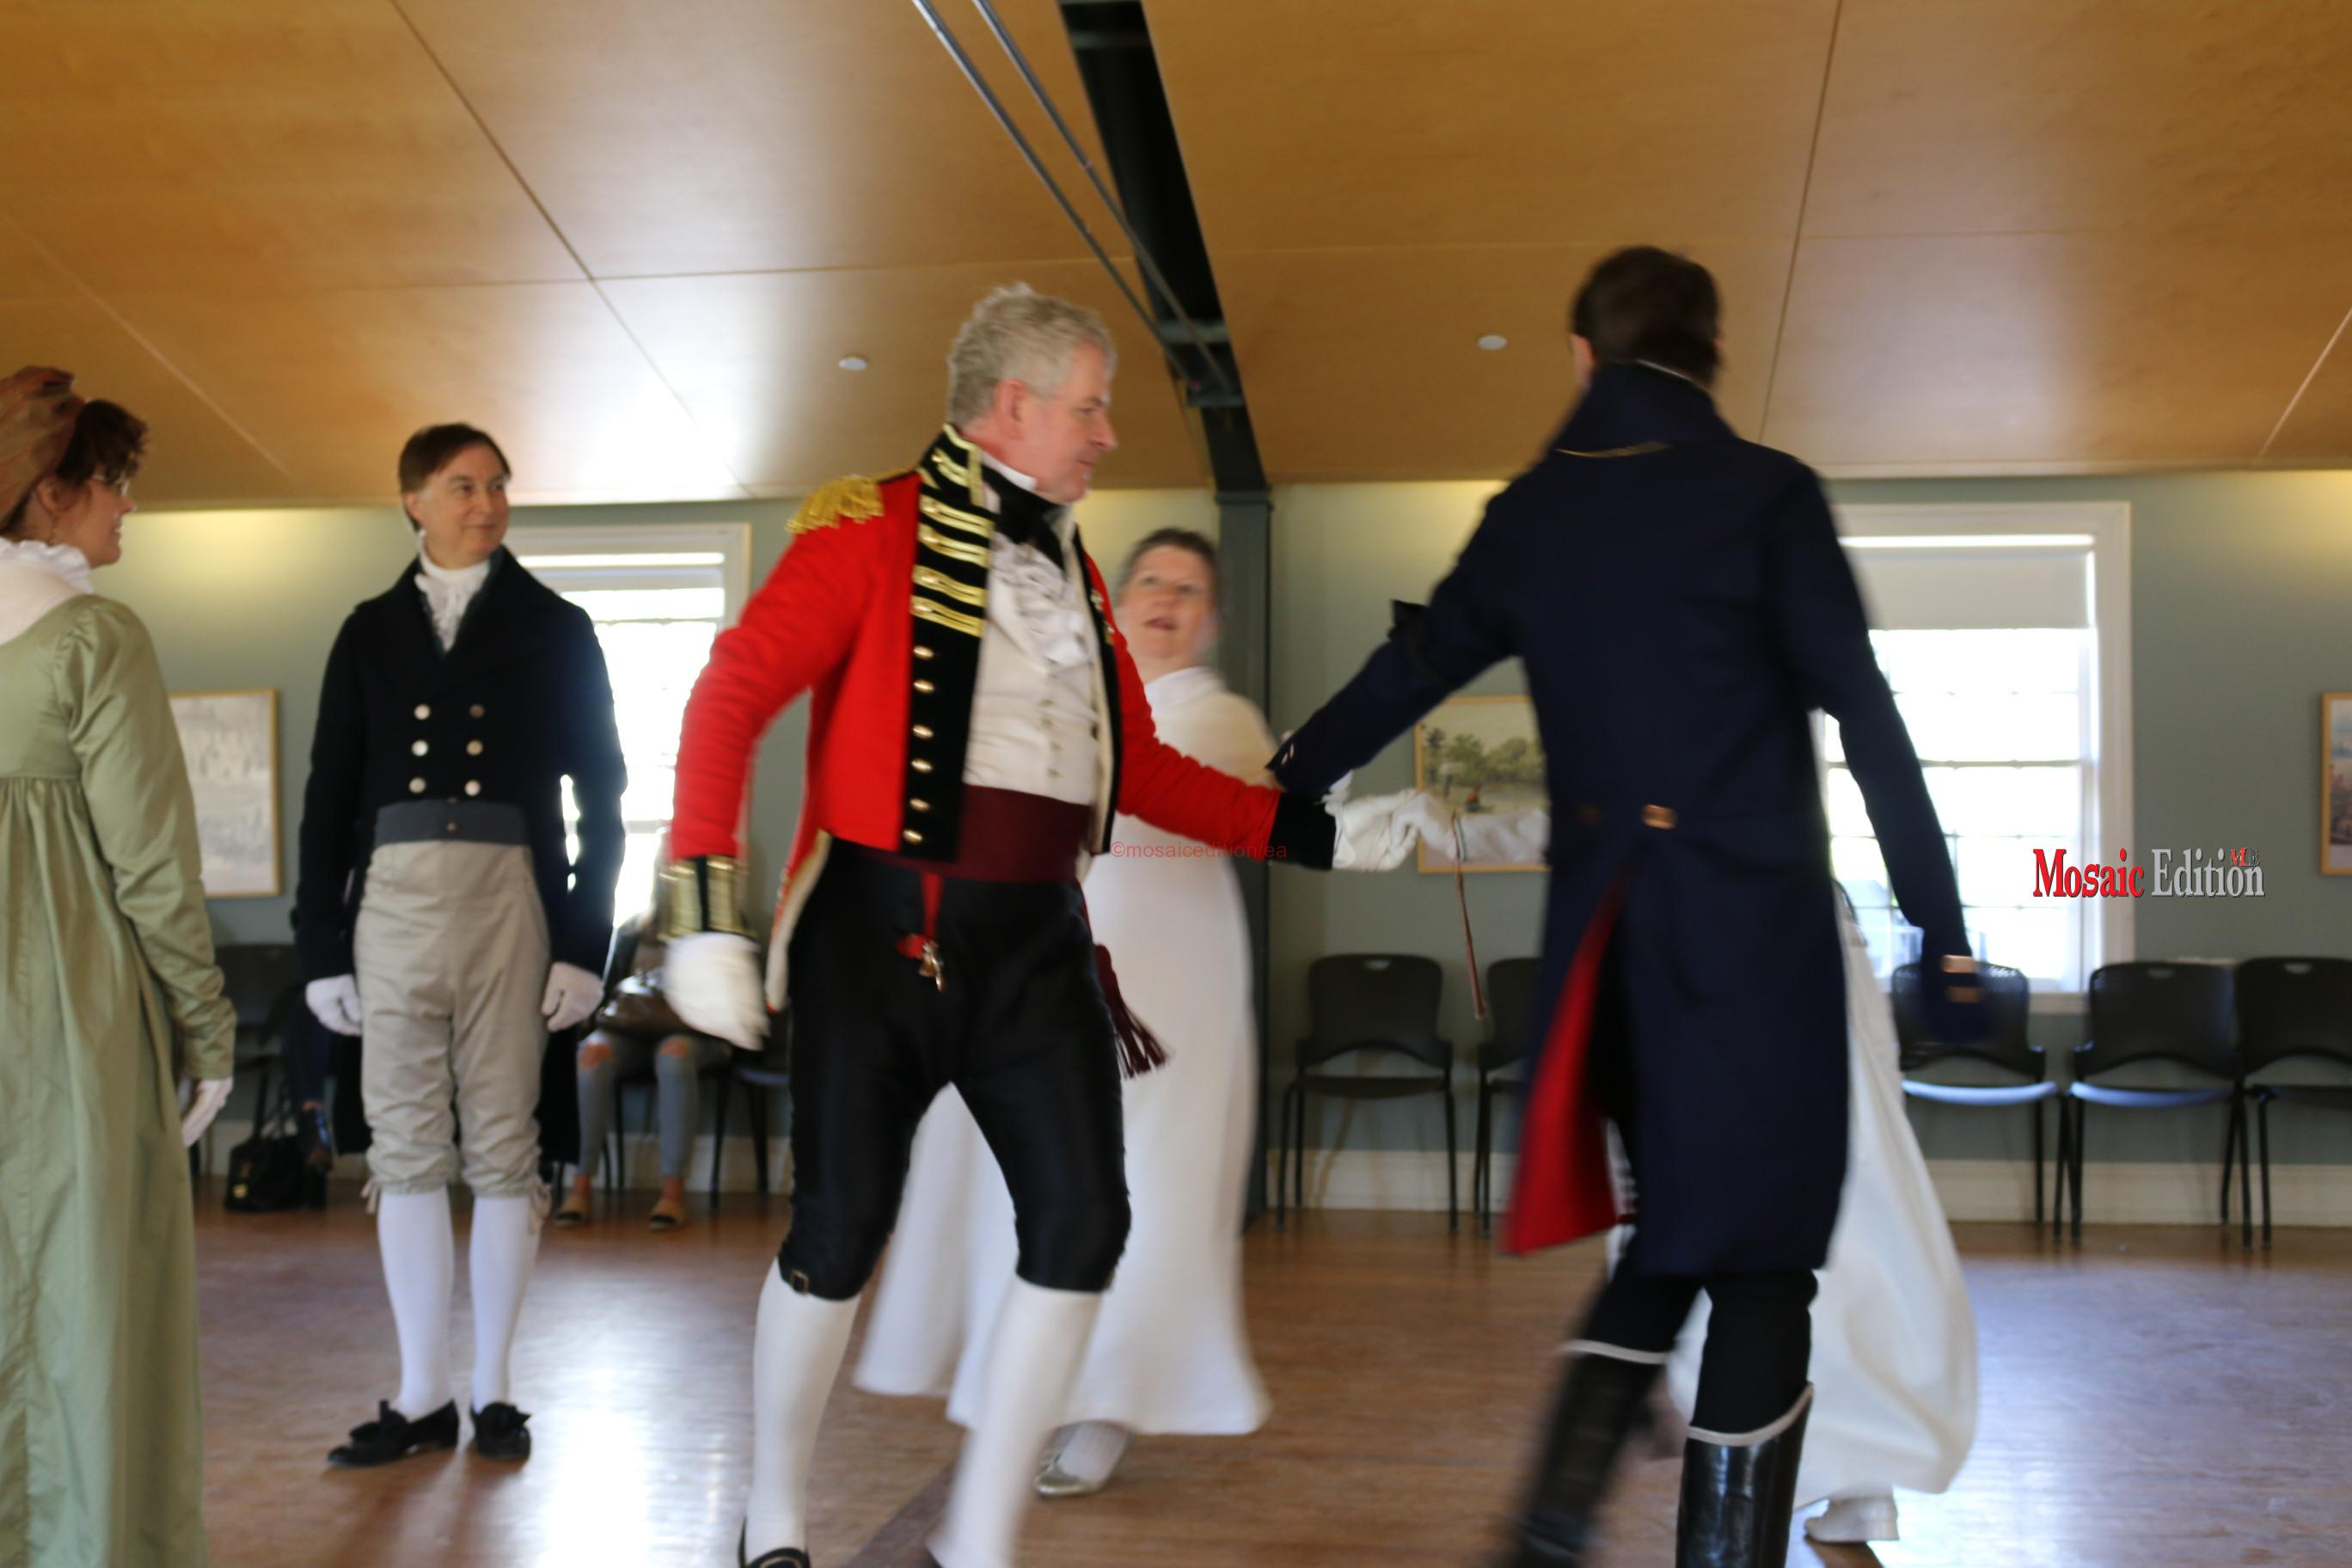 Regency Dancers - All the officers and ladies would have learned how to dance because at that period that would be a hallmark of being a gentleman and a lady.  mosaicedition/ea